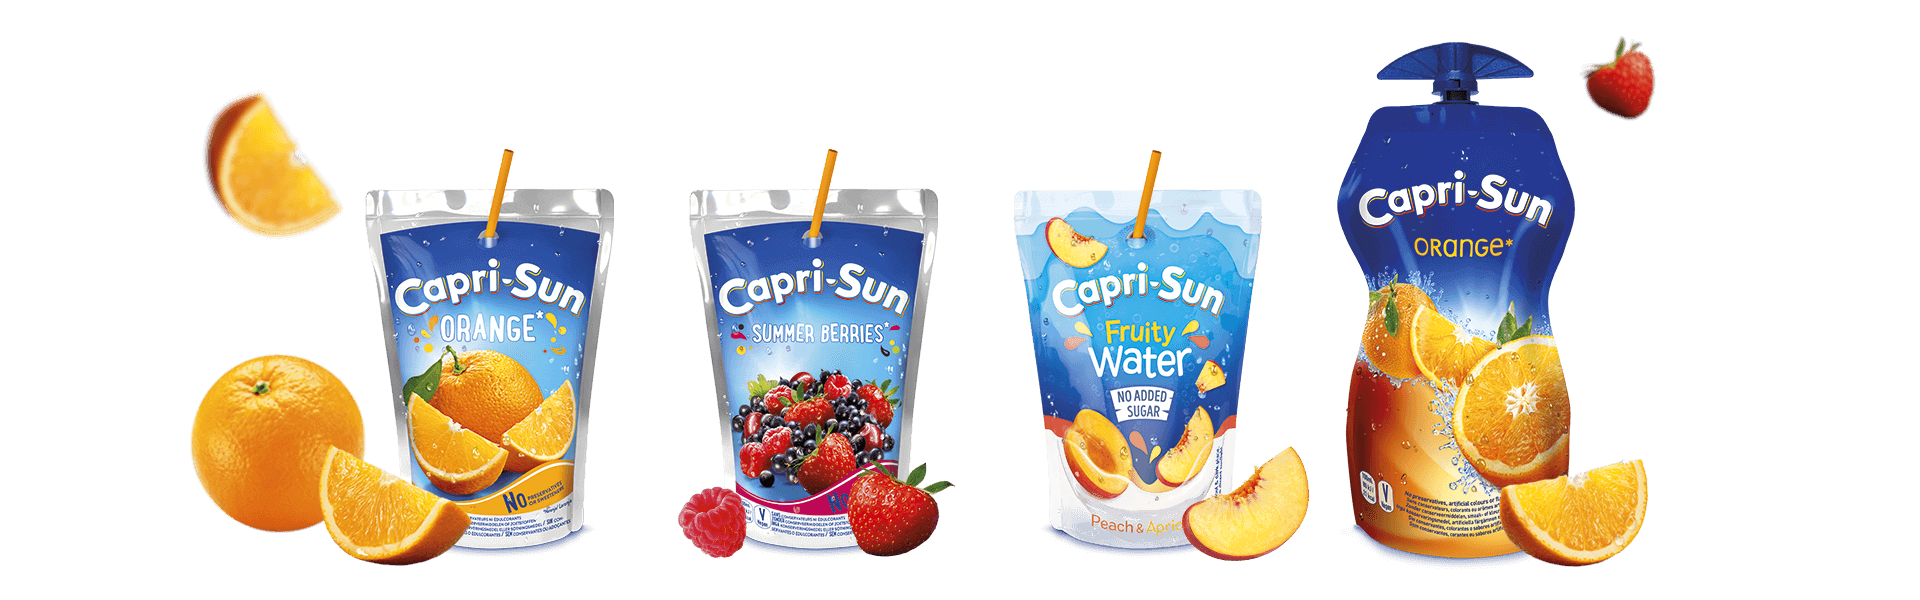 Capri-Sun Orange 200ml Summer Berries 200ml Fruity Water No added sugar Peach Apricot 200ml and Orange 330ml with flying fruits